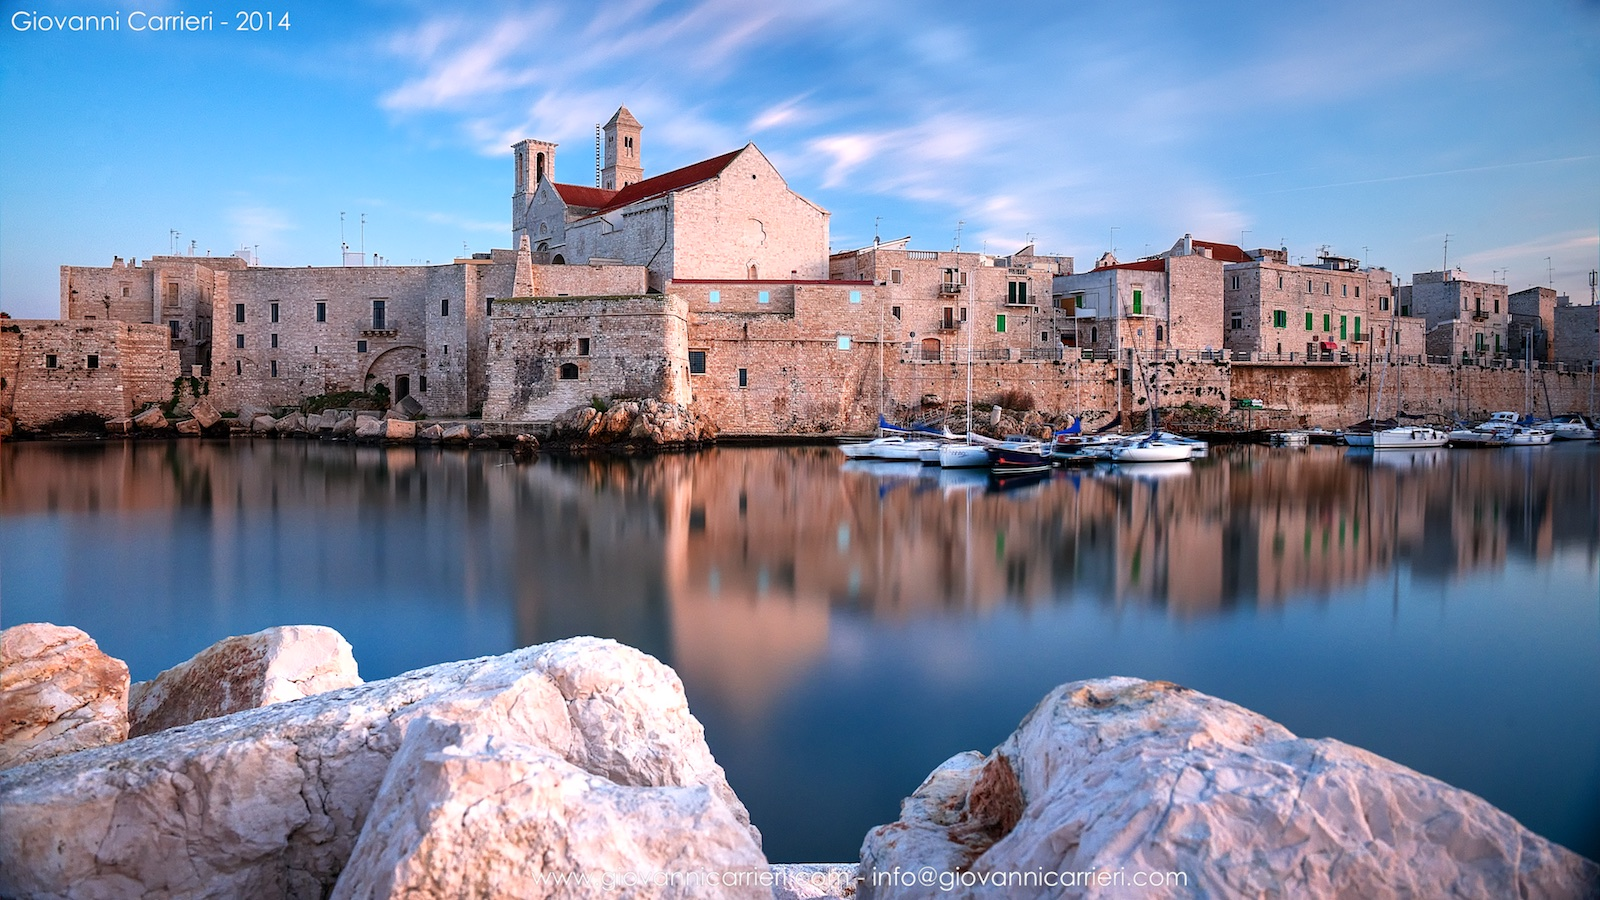 Photographs of Giovinazzo